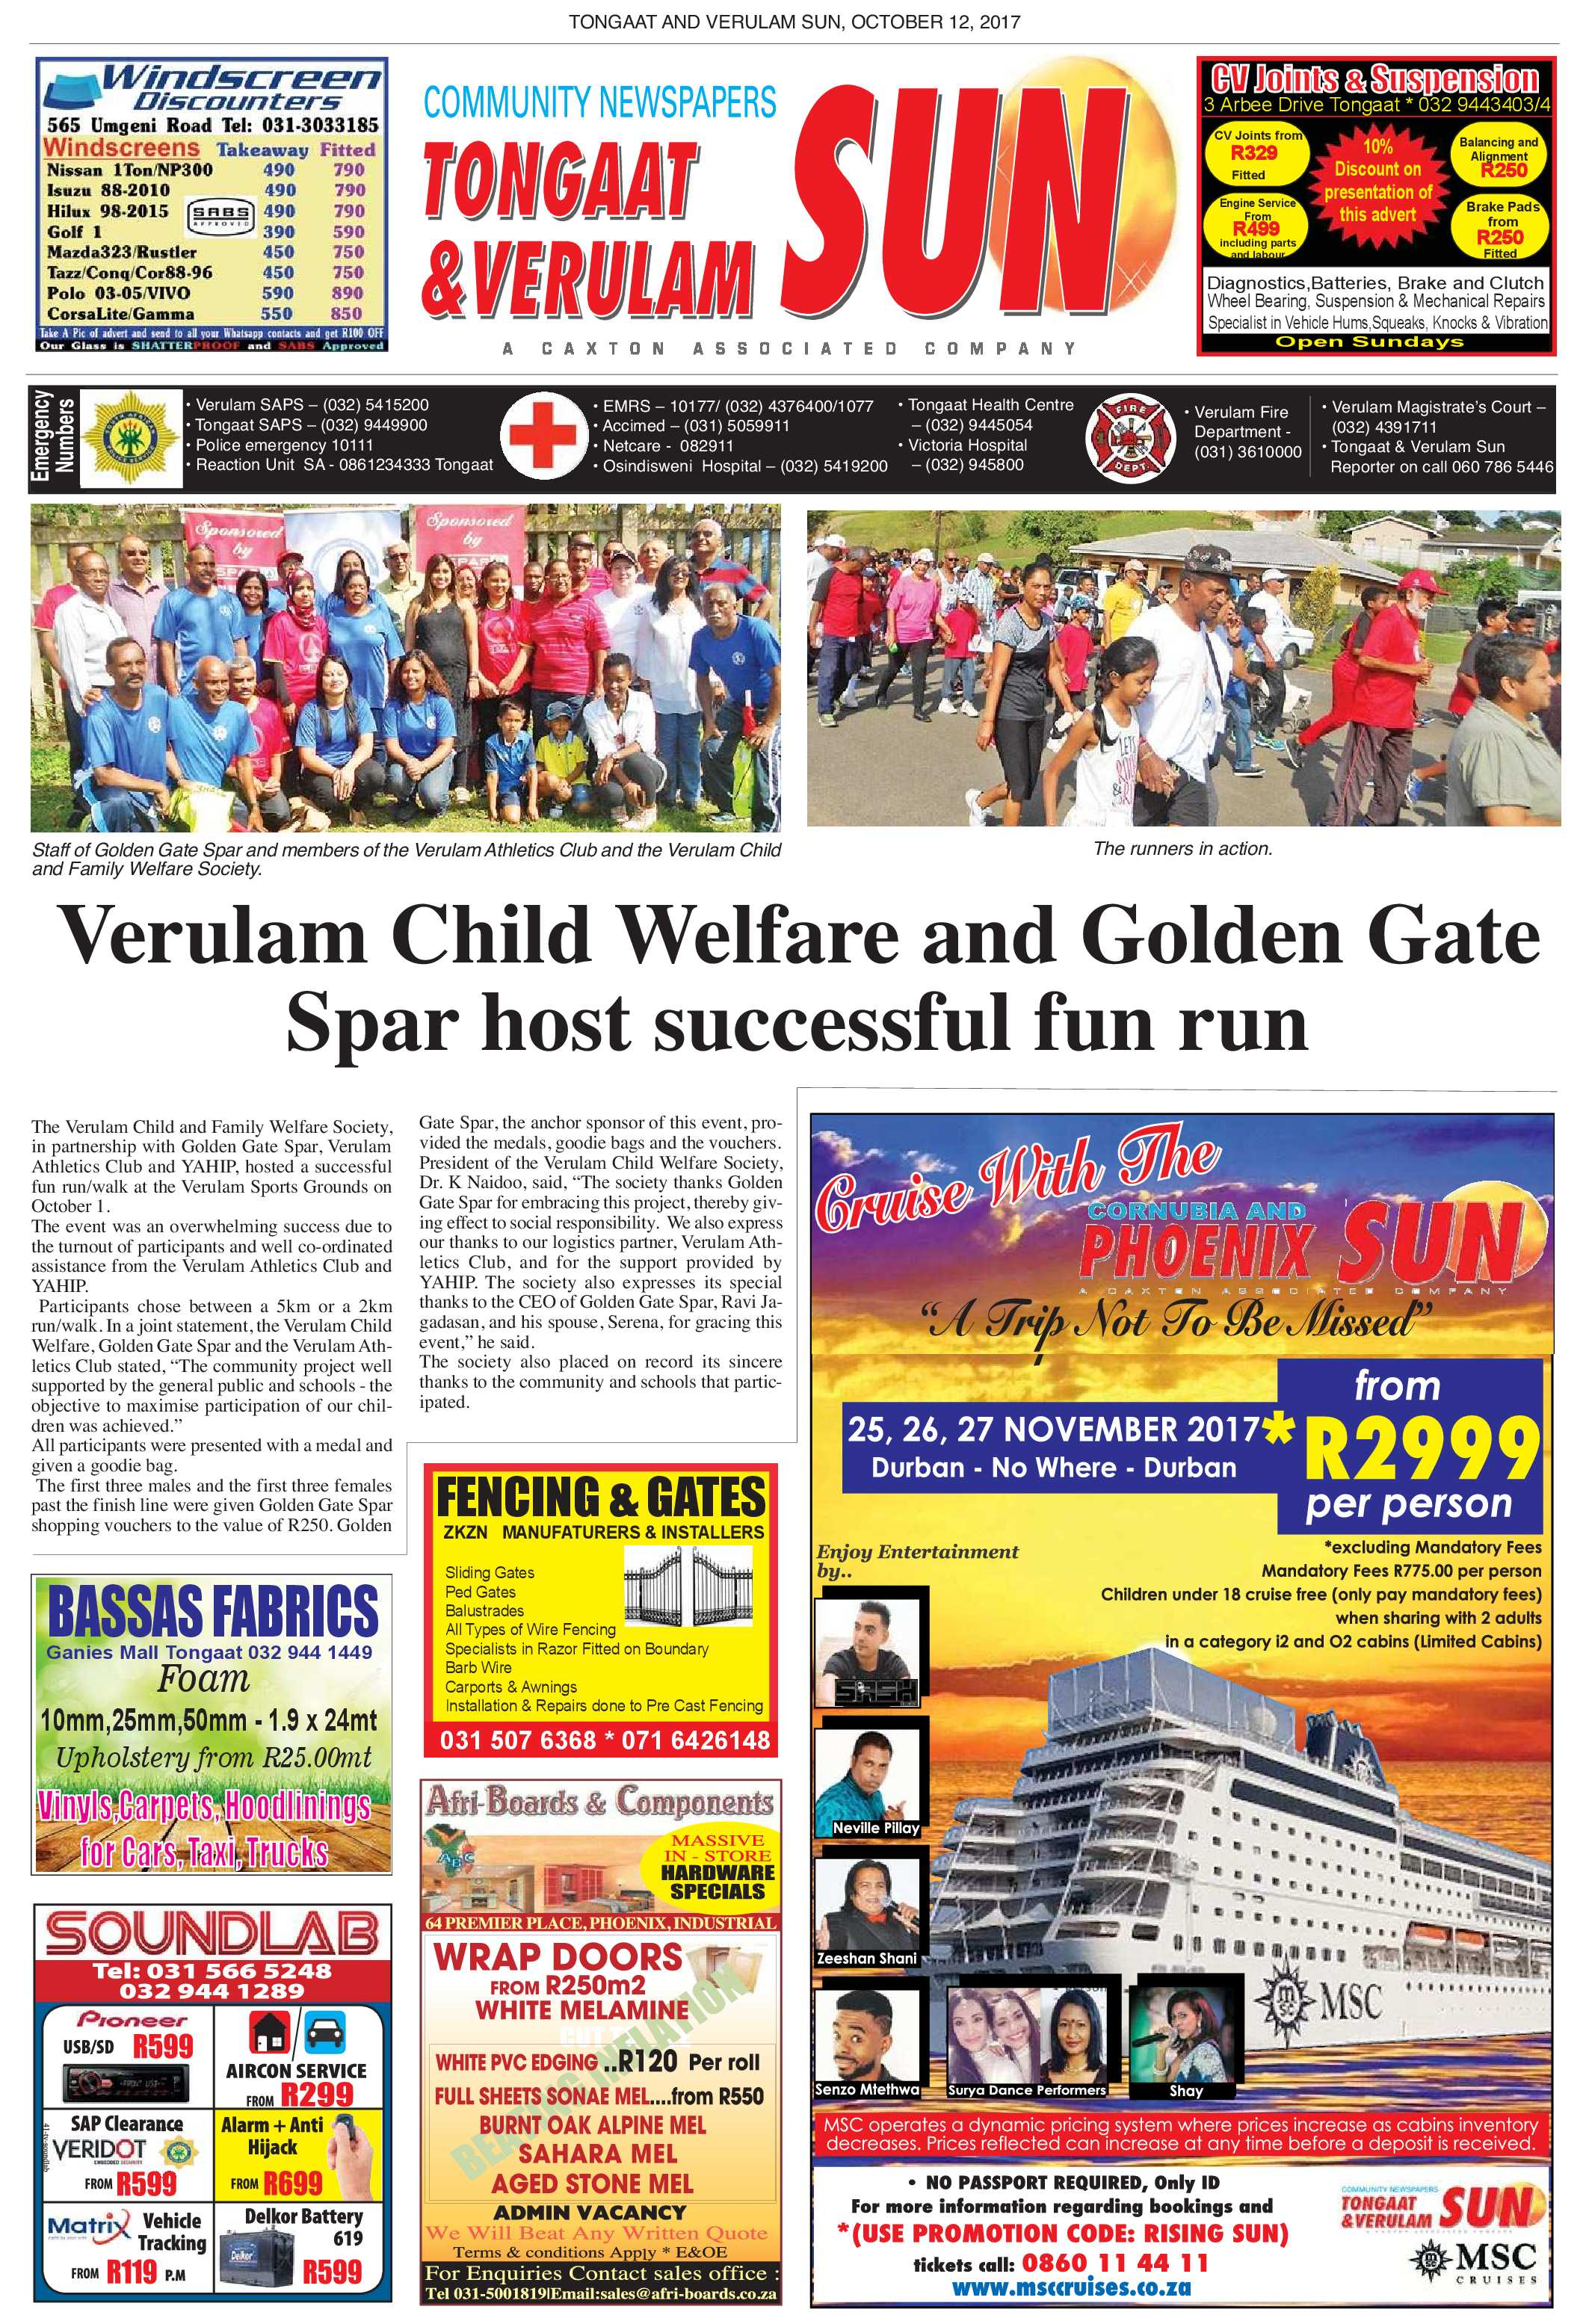 tongaat-verulam-sun-october-12-epapers-page-12